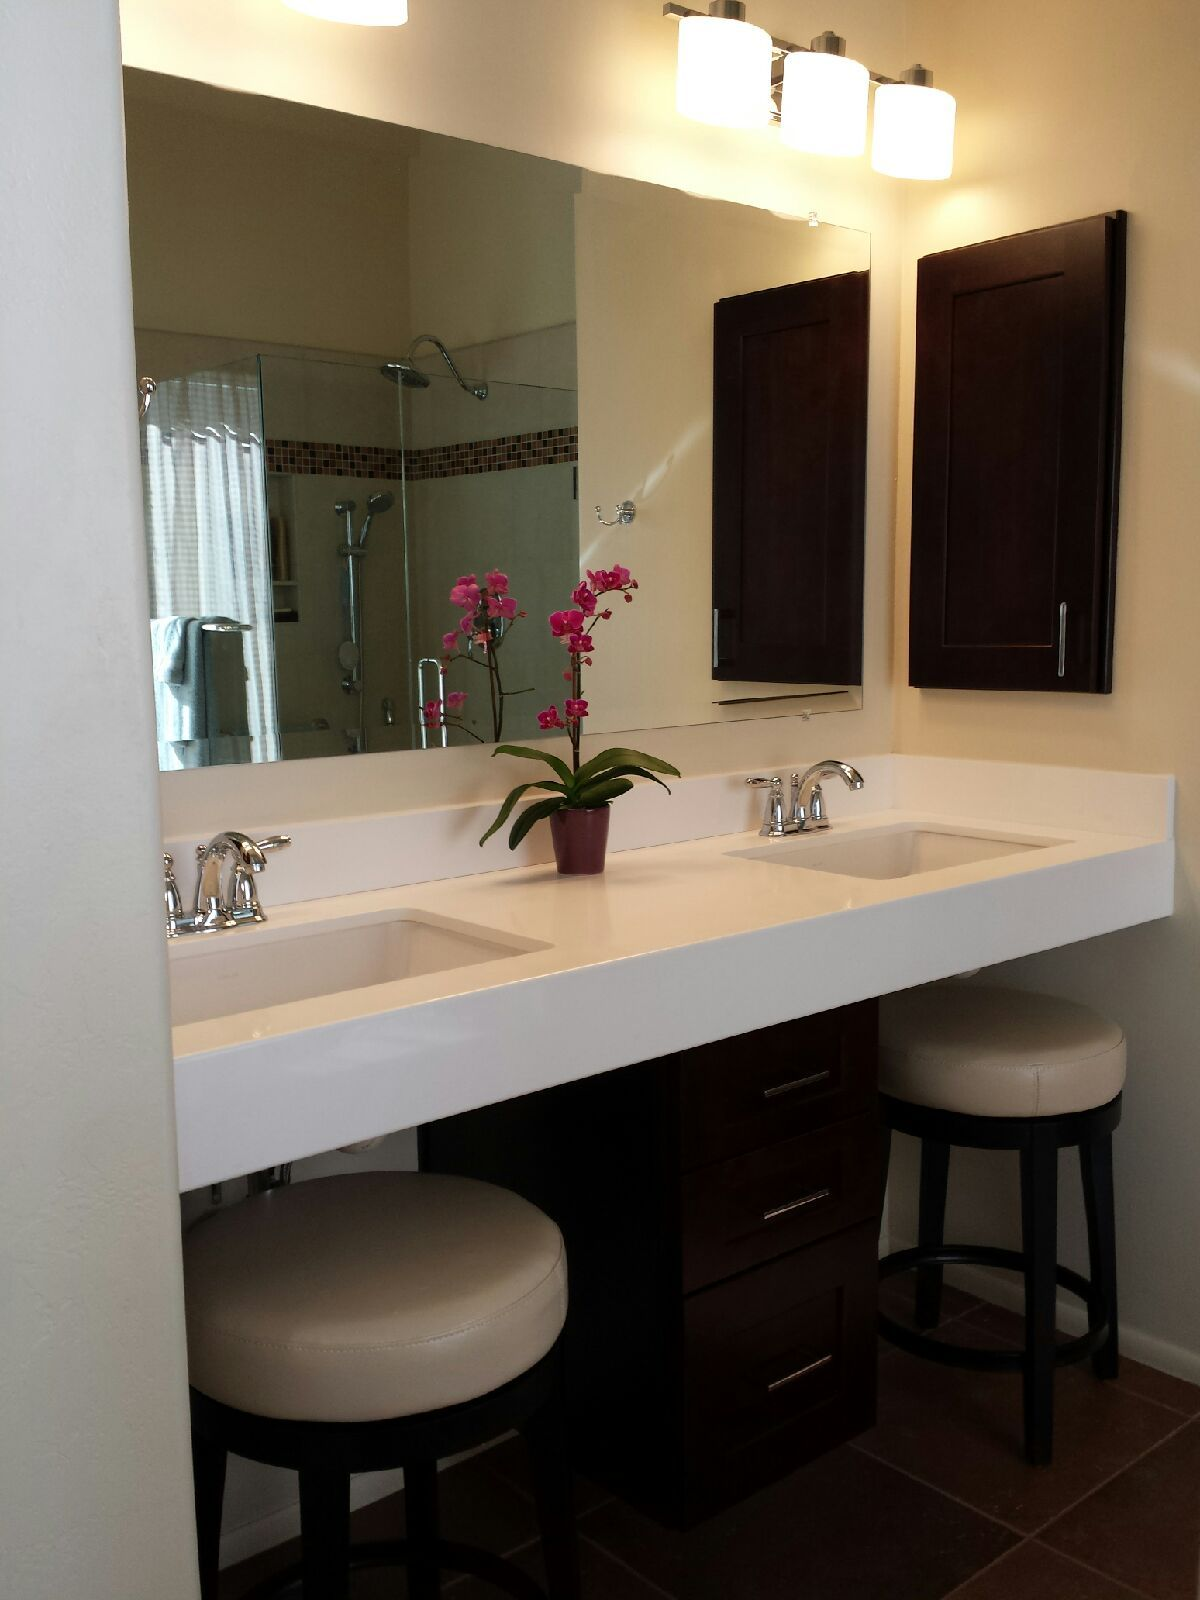 Master Bath Vanity With ADA Accessible Roll Under Style